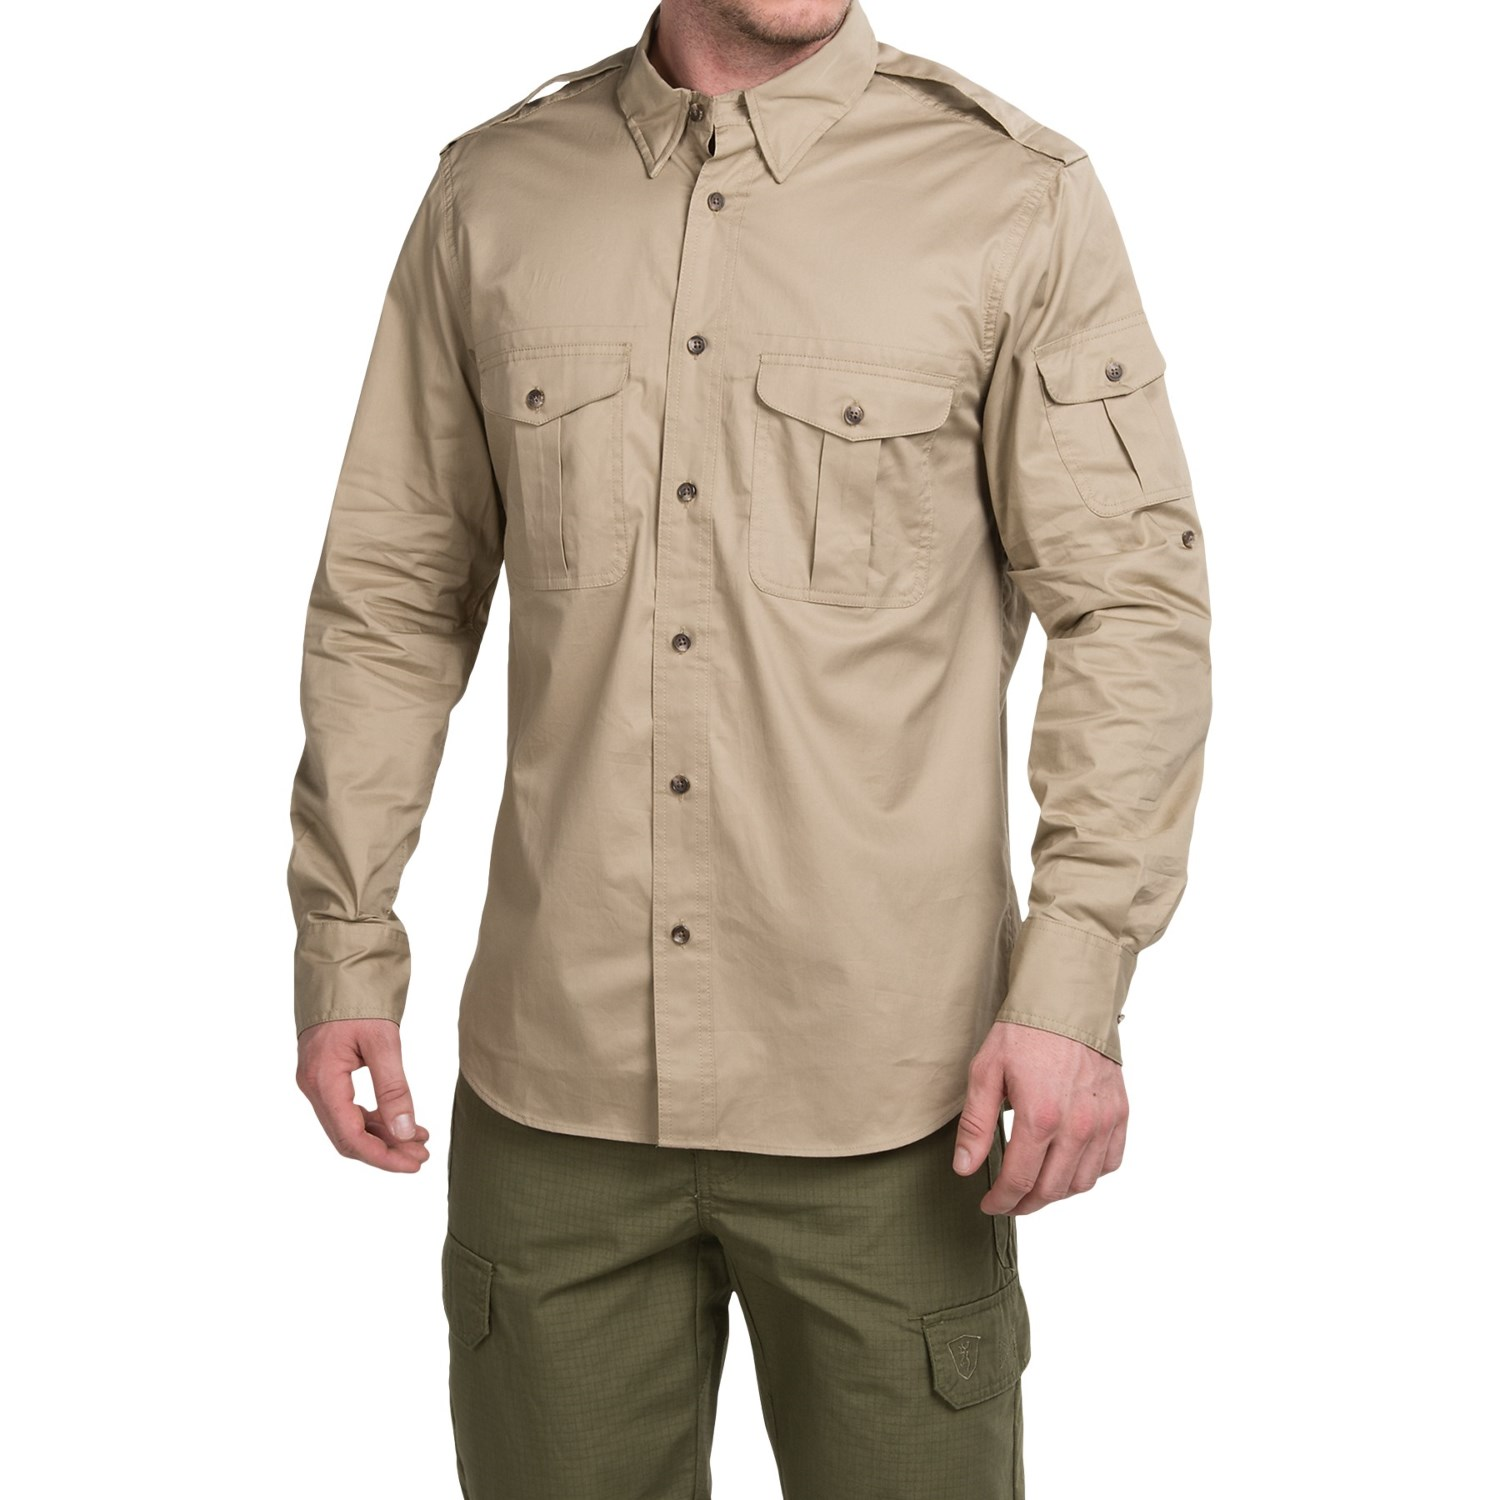 475d56056 10 Best Hunting Shirts Reviewed & Rated in 2019 | TheGearHunt